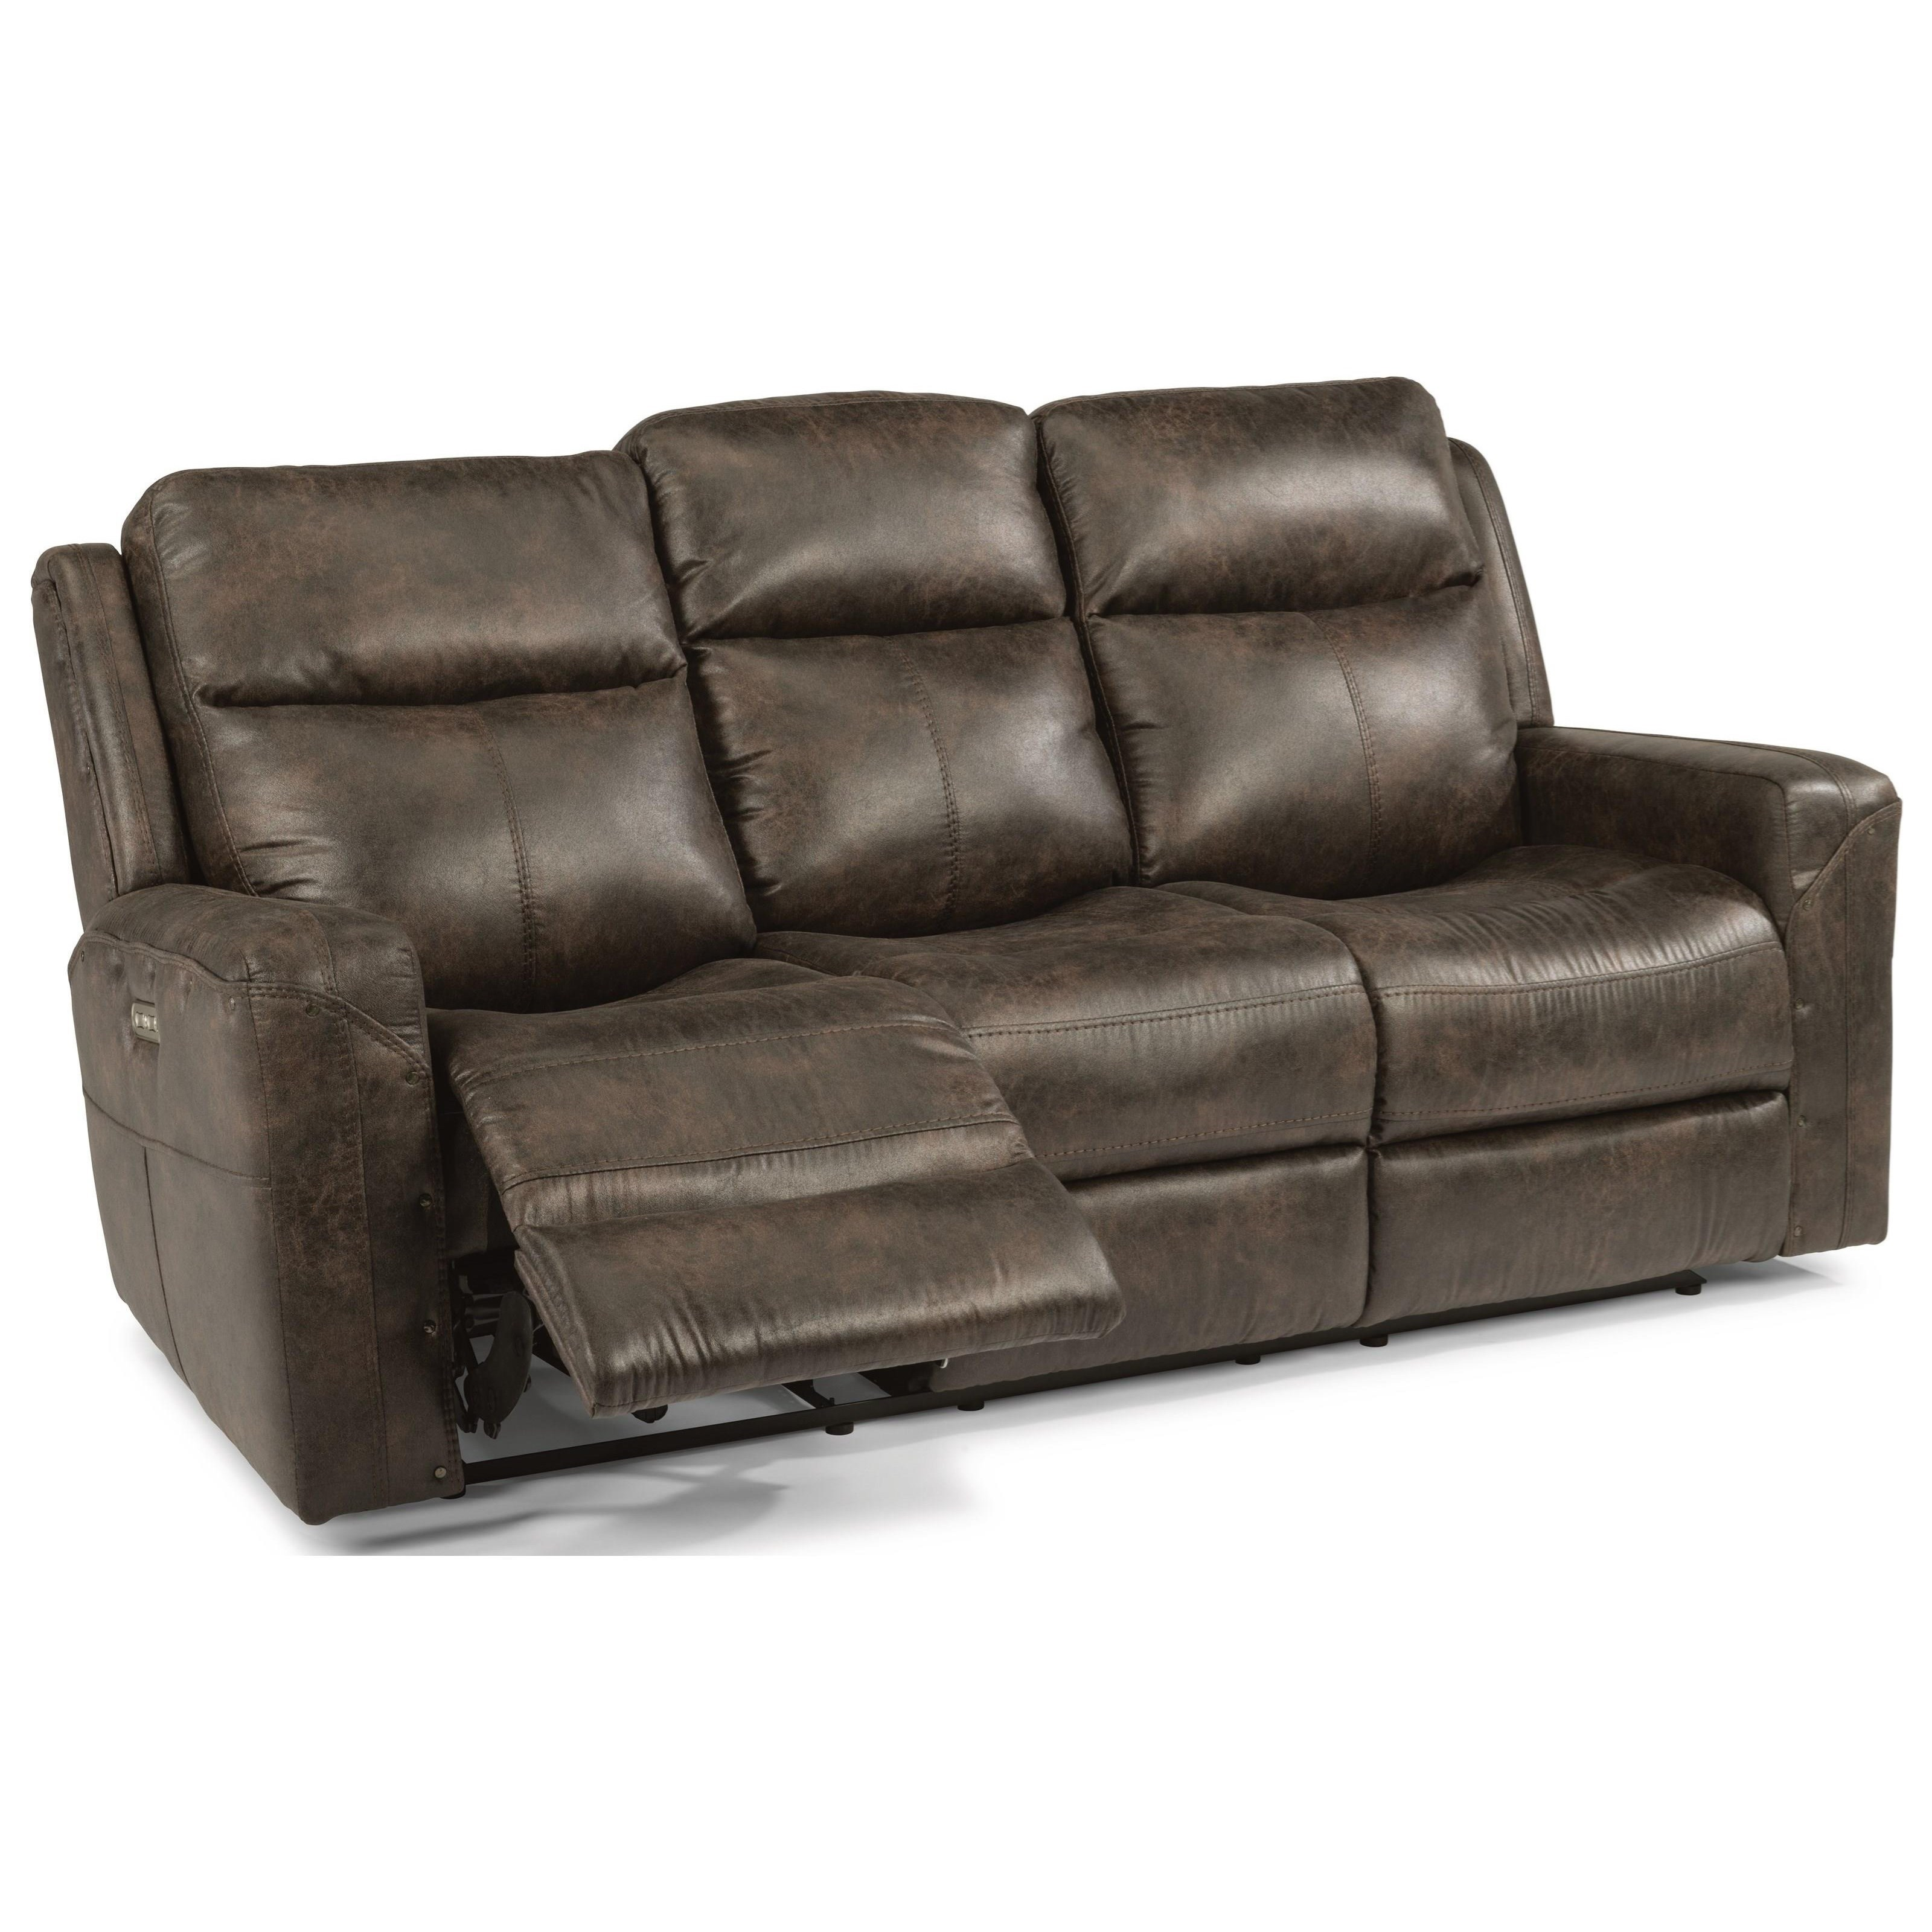 flexsteel bexley sofa queen champion transitional on tufted